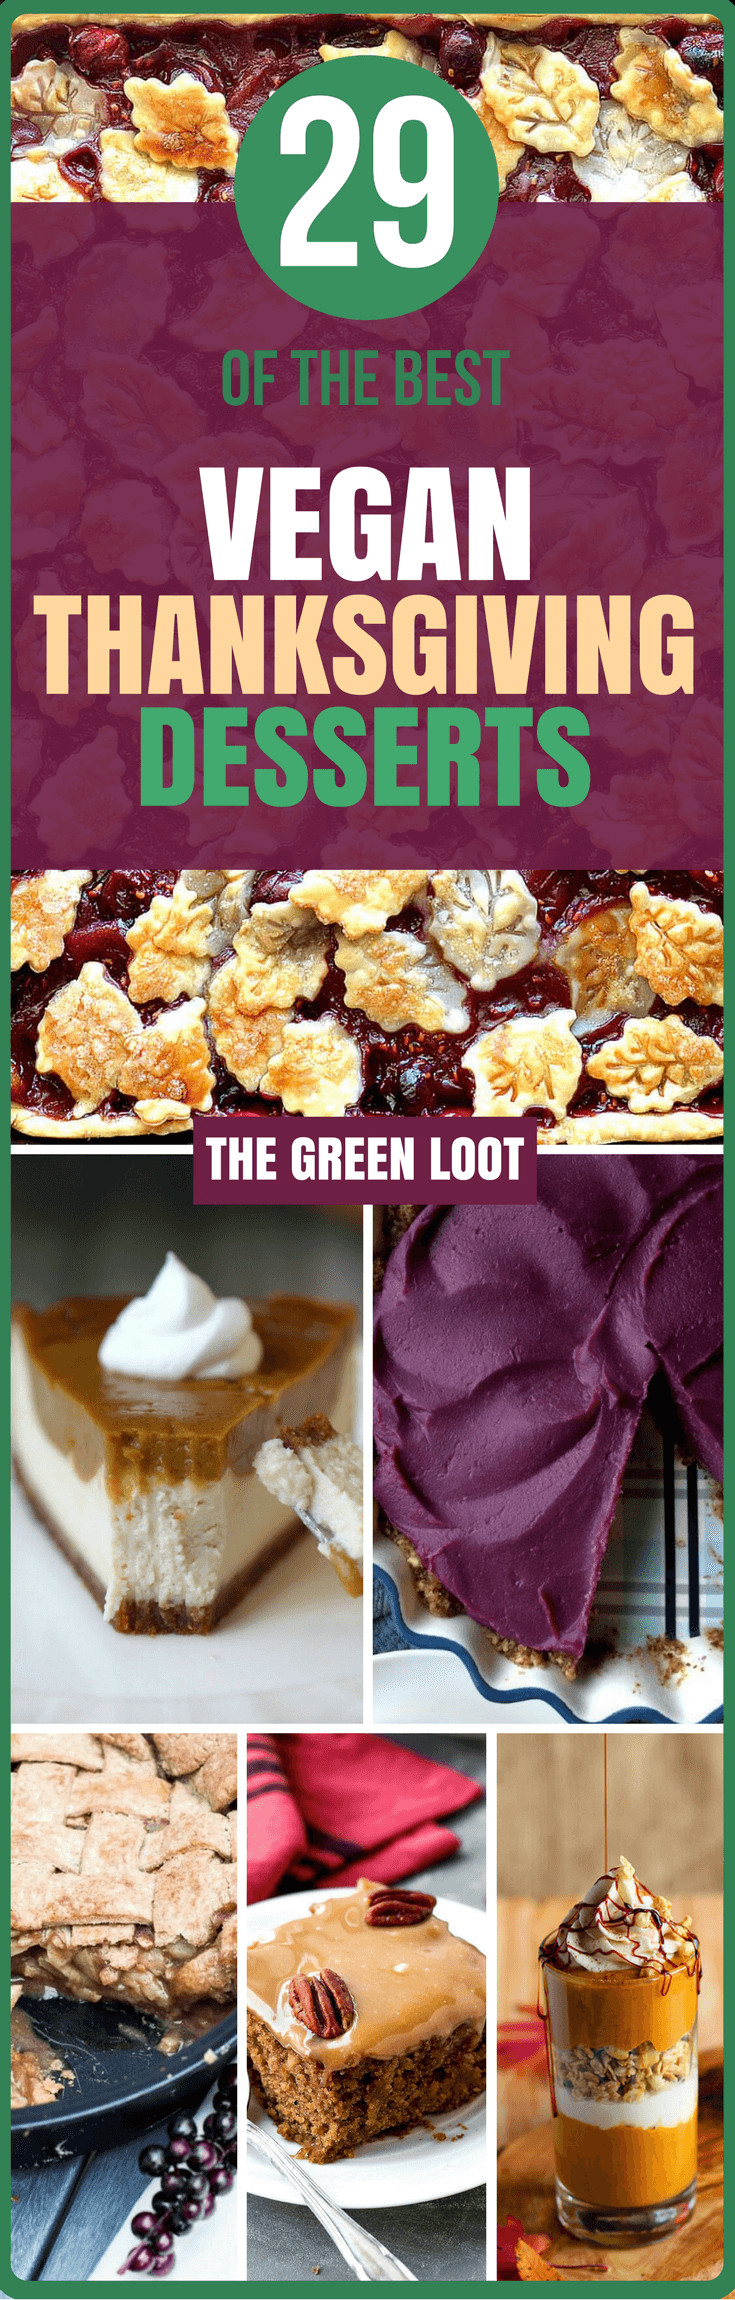 Vegan Thanksgiving Dessert  The Best 29 Vegan Thanksgiving Dessert Recipes The Green